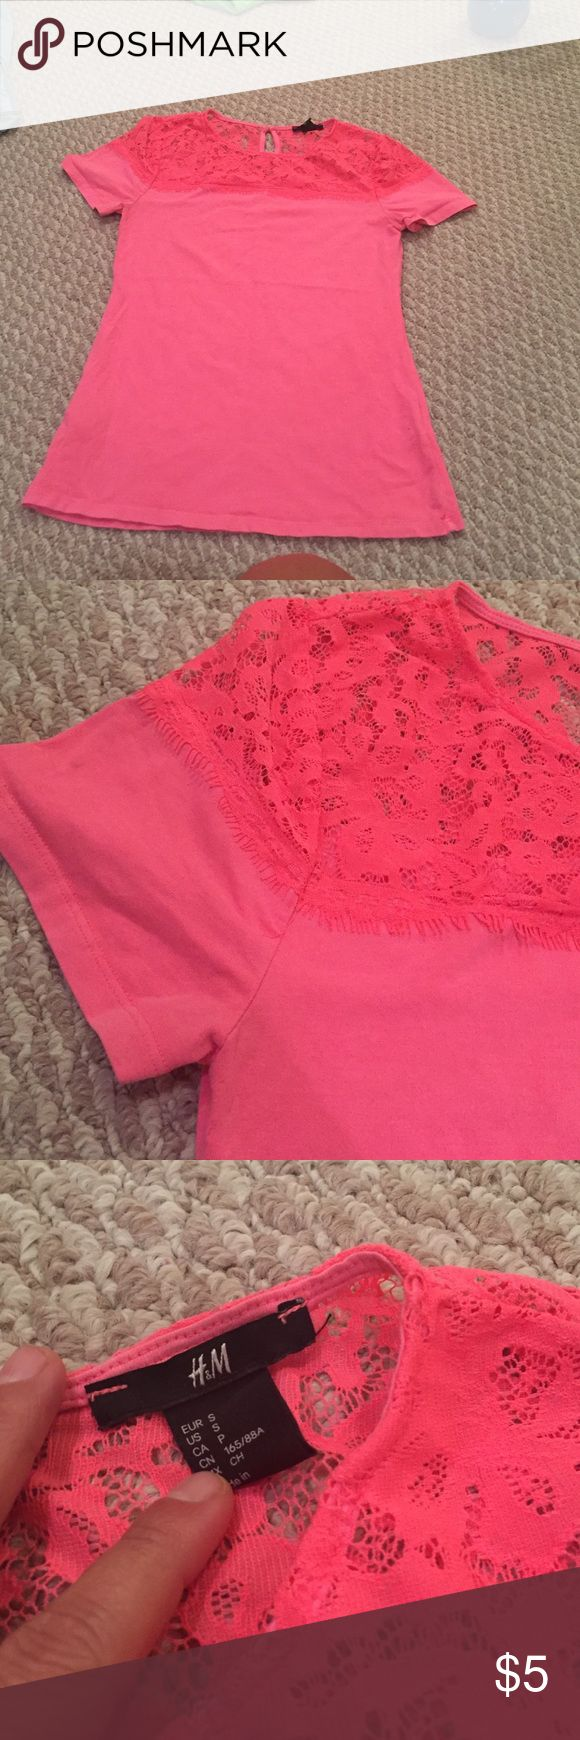 Pink lace top One small mark on sleeve H&M Tops Tees - Short Sleeve